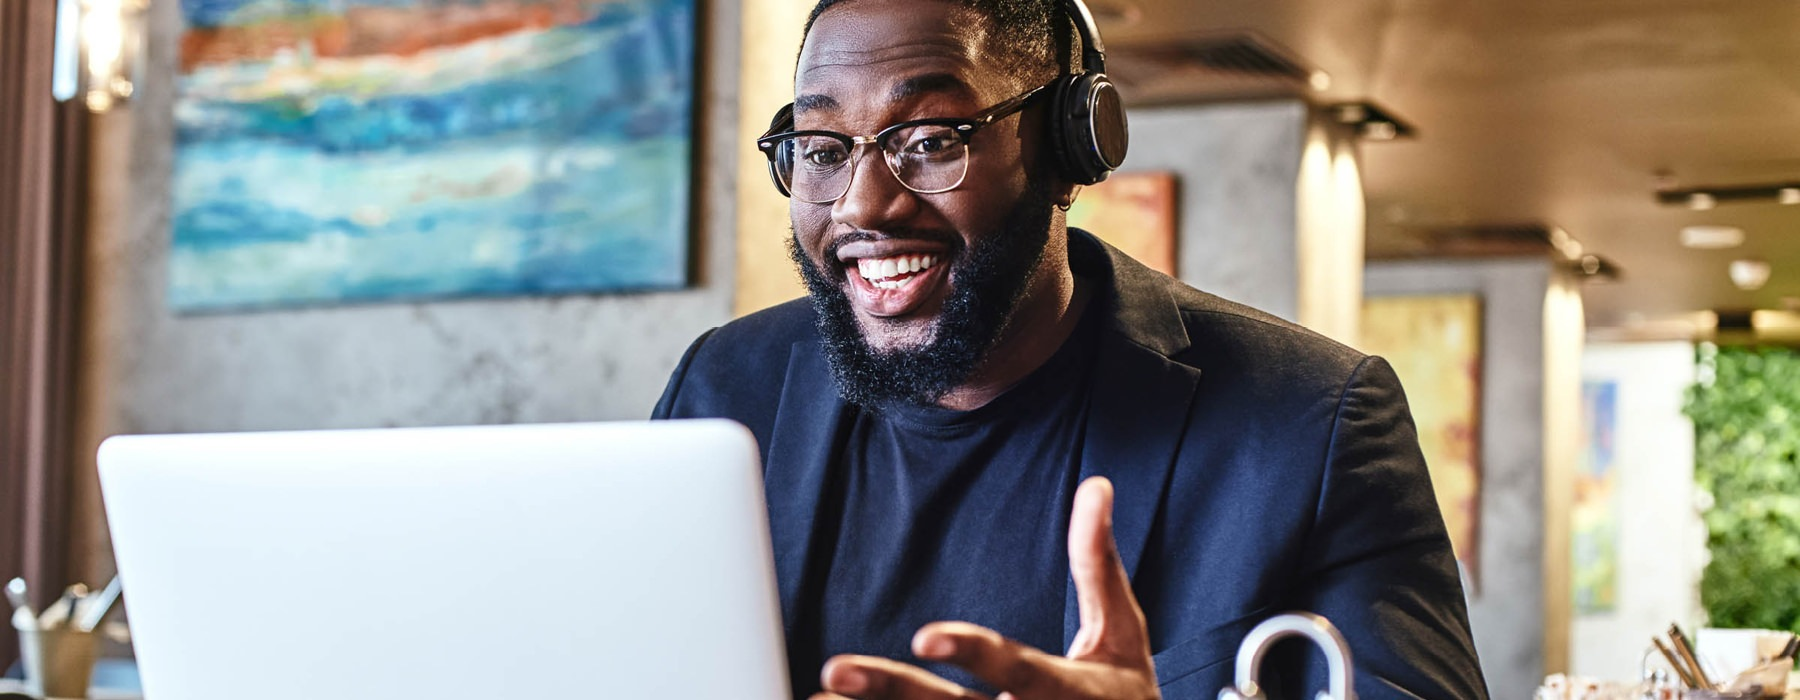 happy man with headphones on video conferences on his laptop